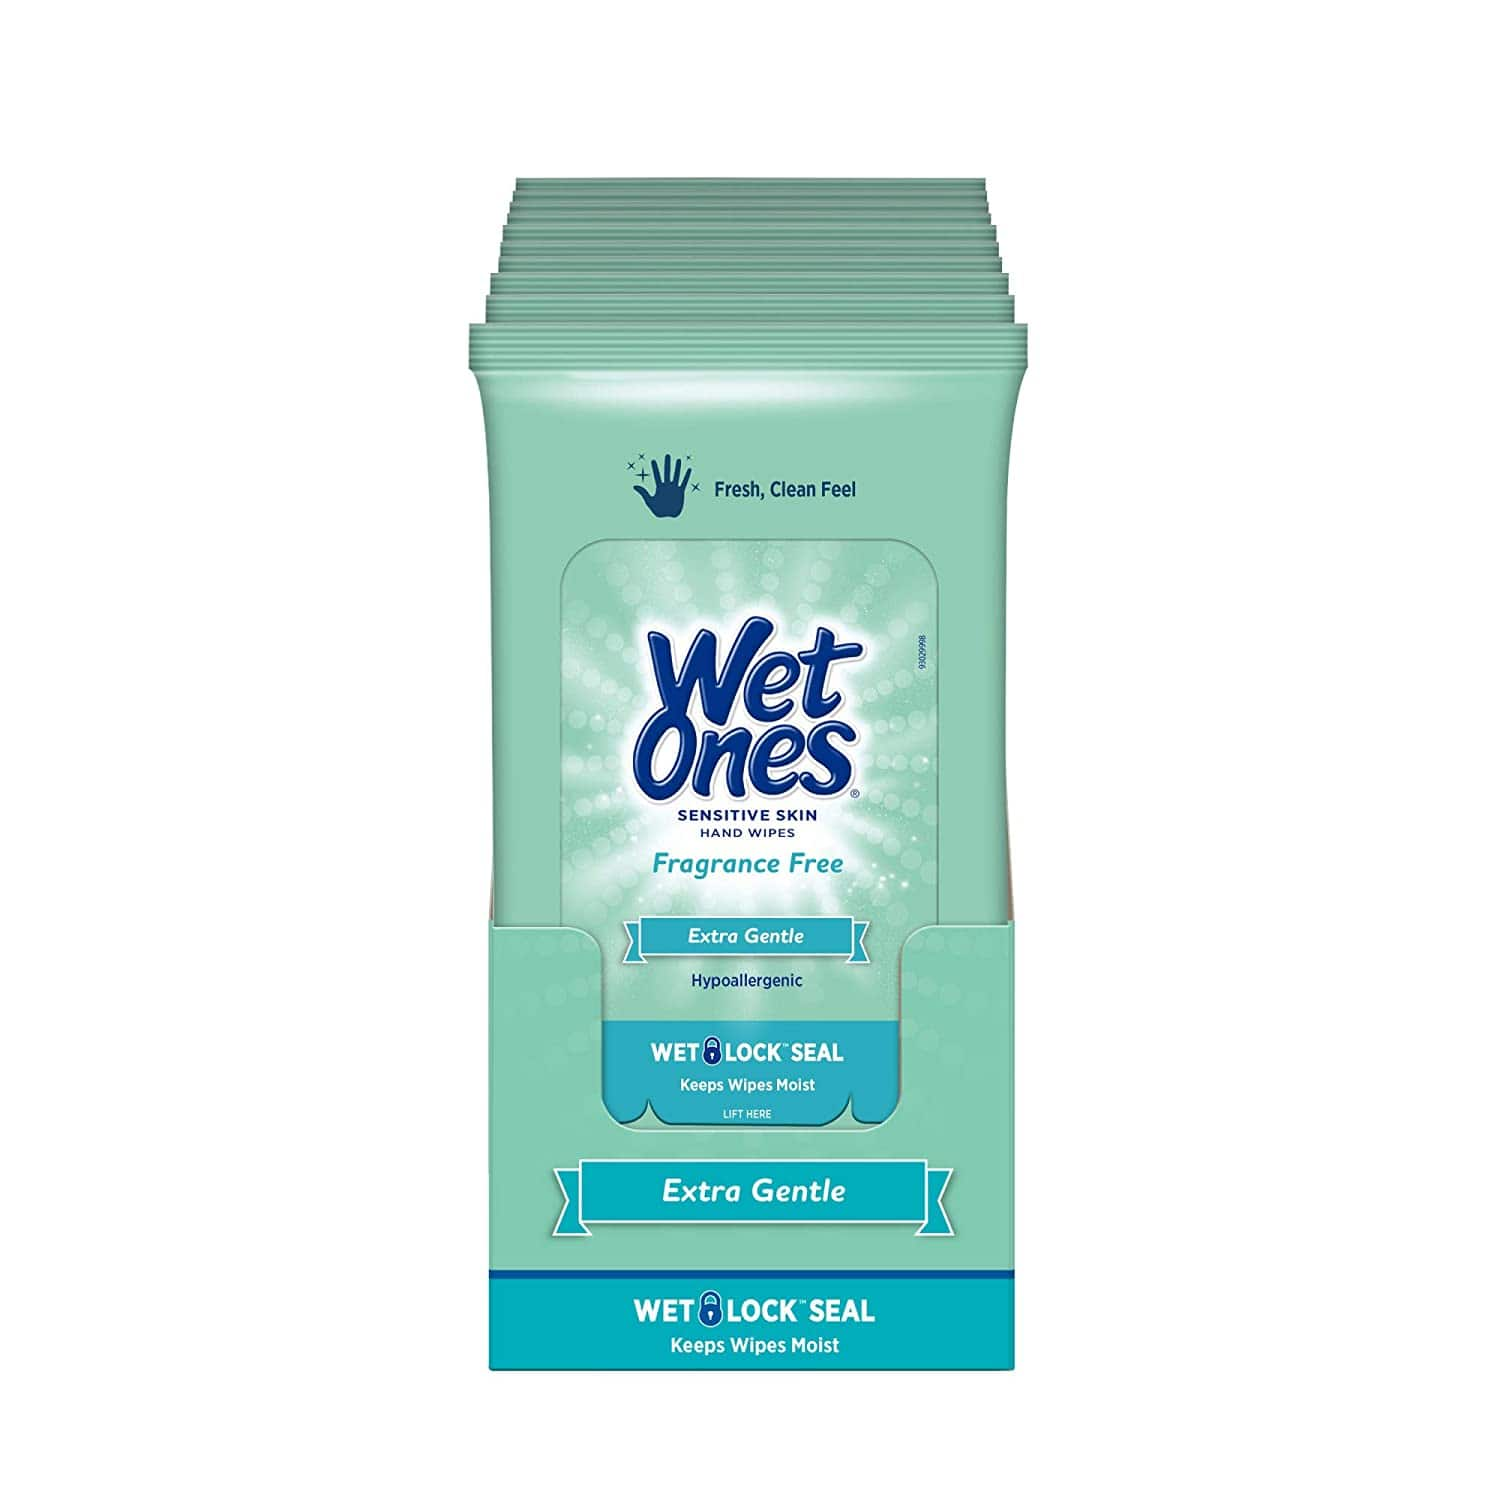 Wet Ones Sensitive Skin Hand Wipes, 20 Count (Pack Of 10) $19.52